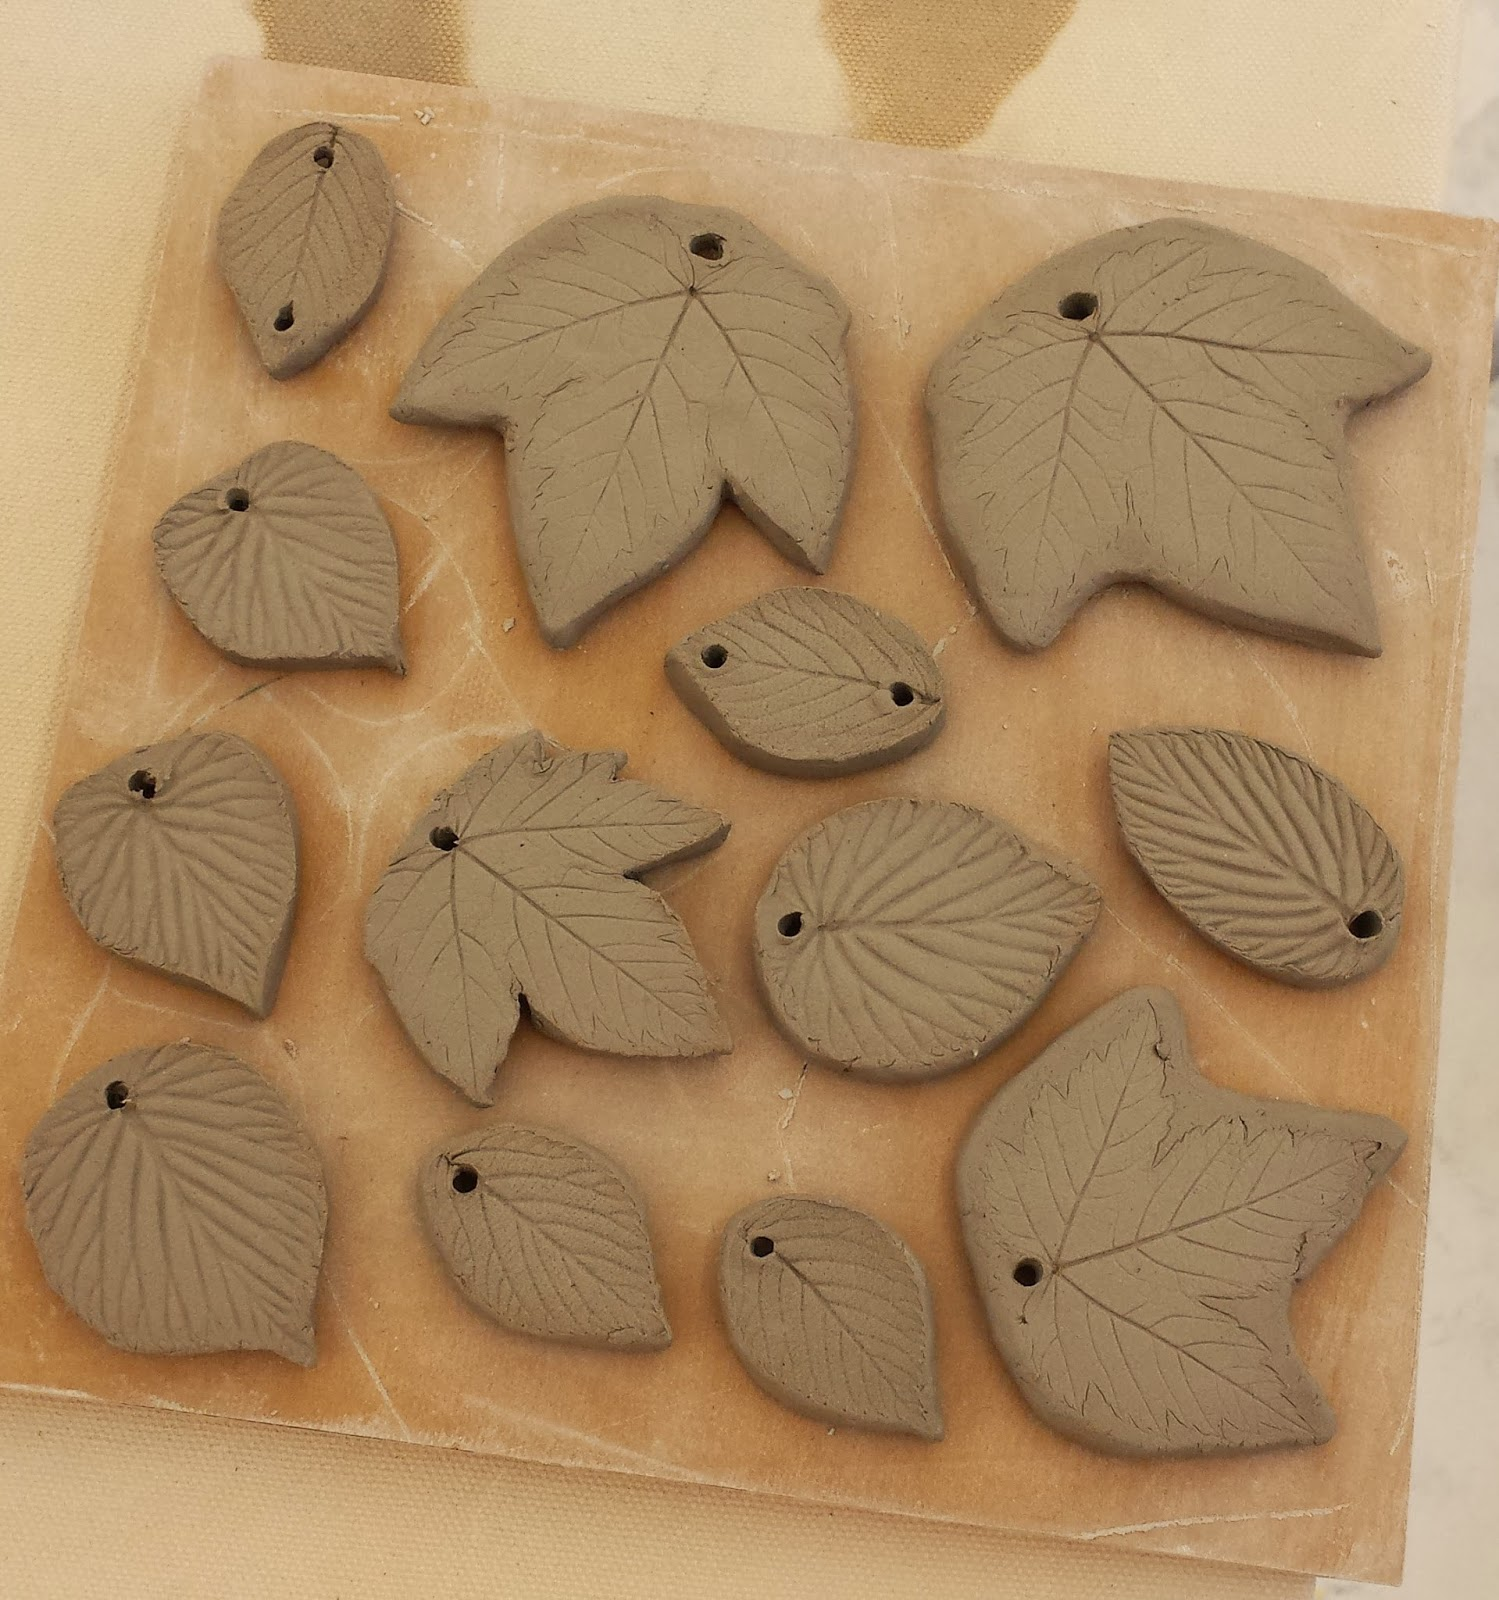 Stoneware clay leaf pendants and beads in progress.